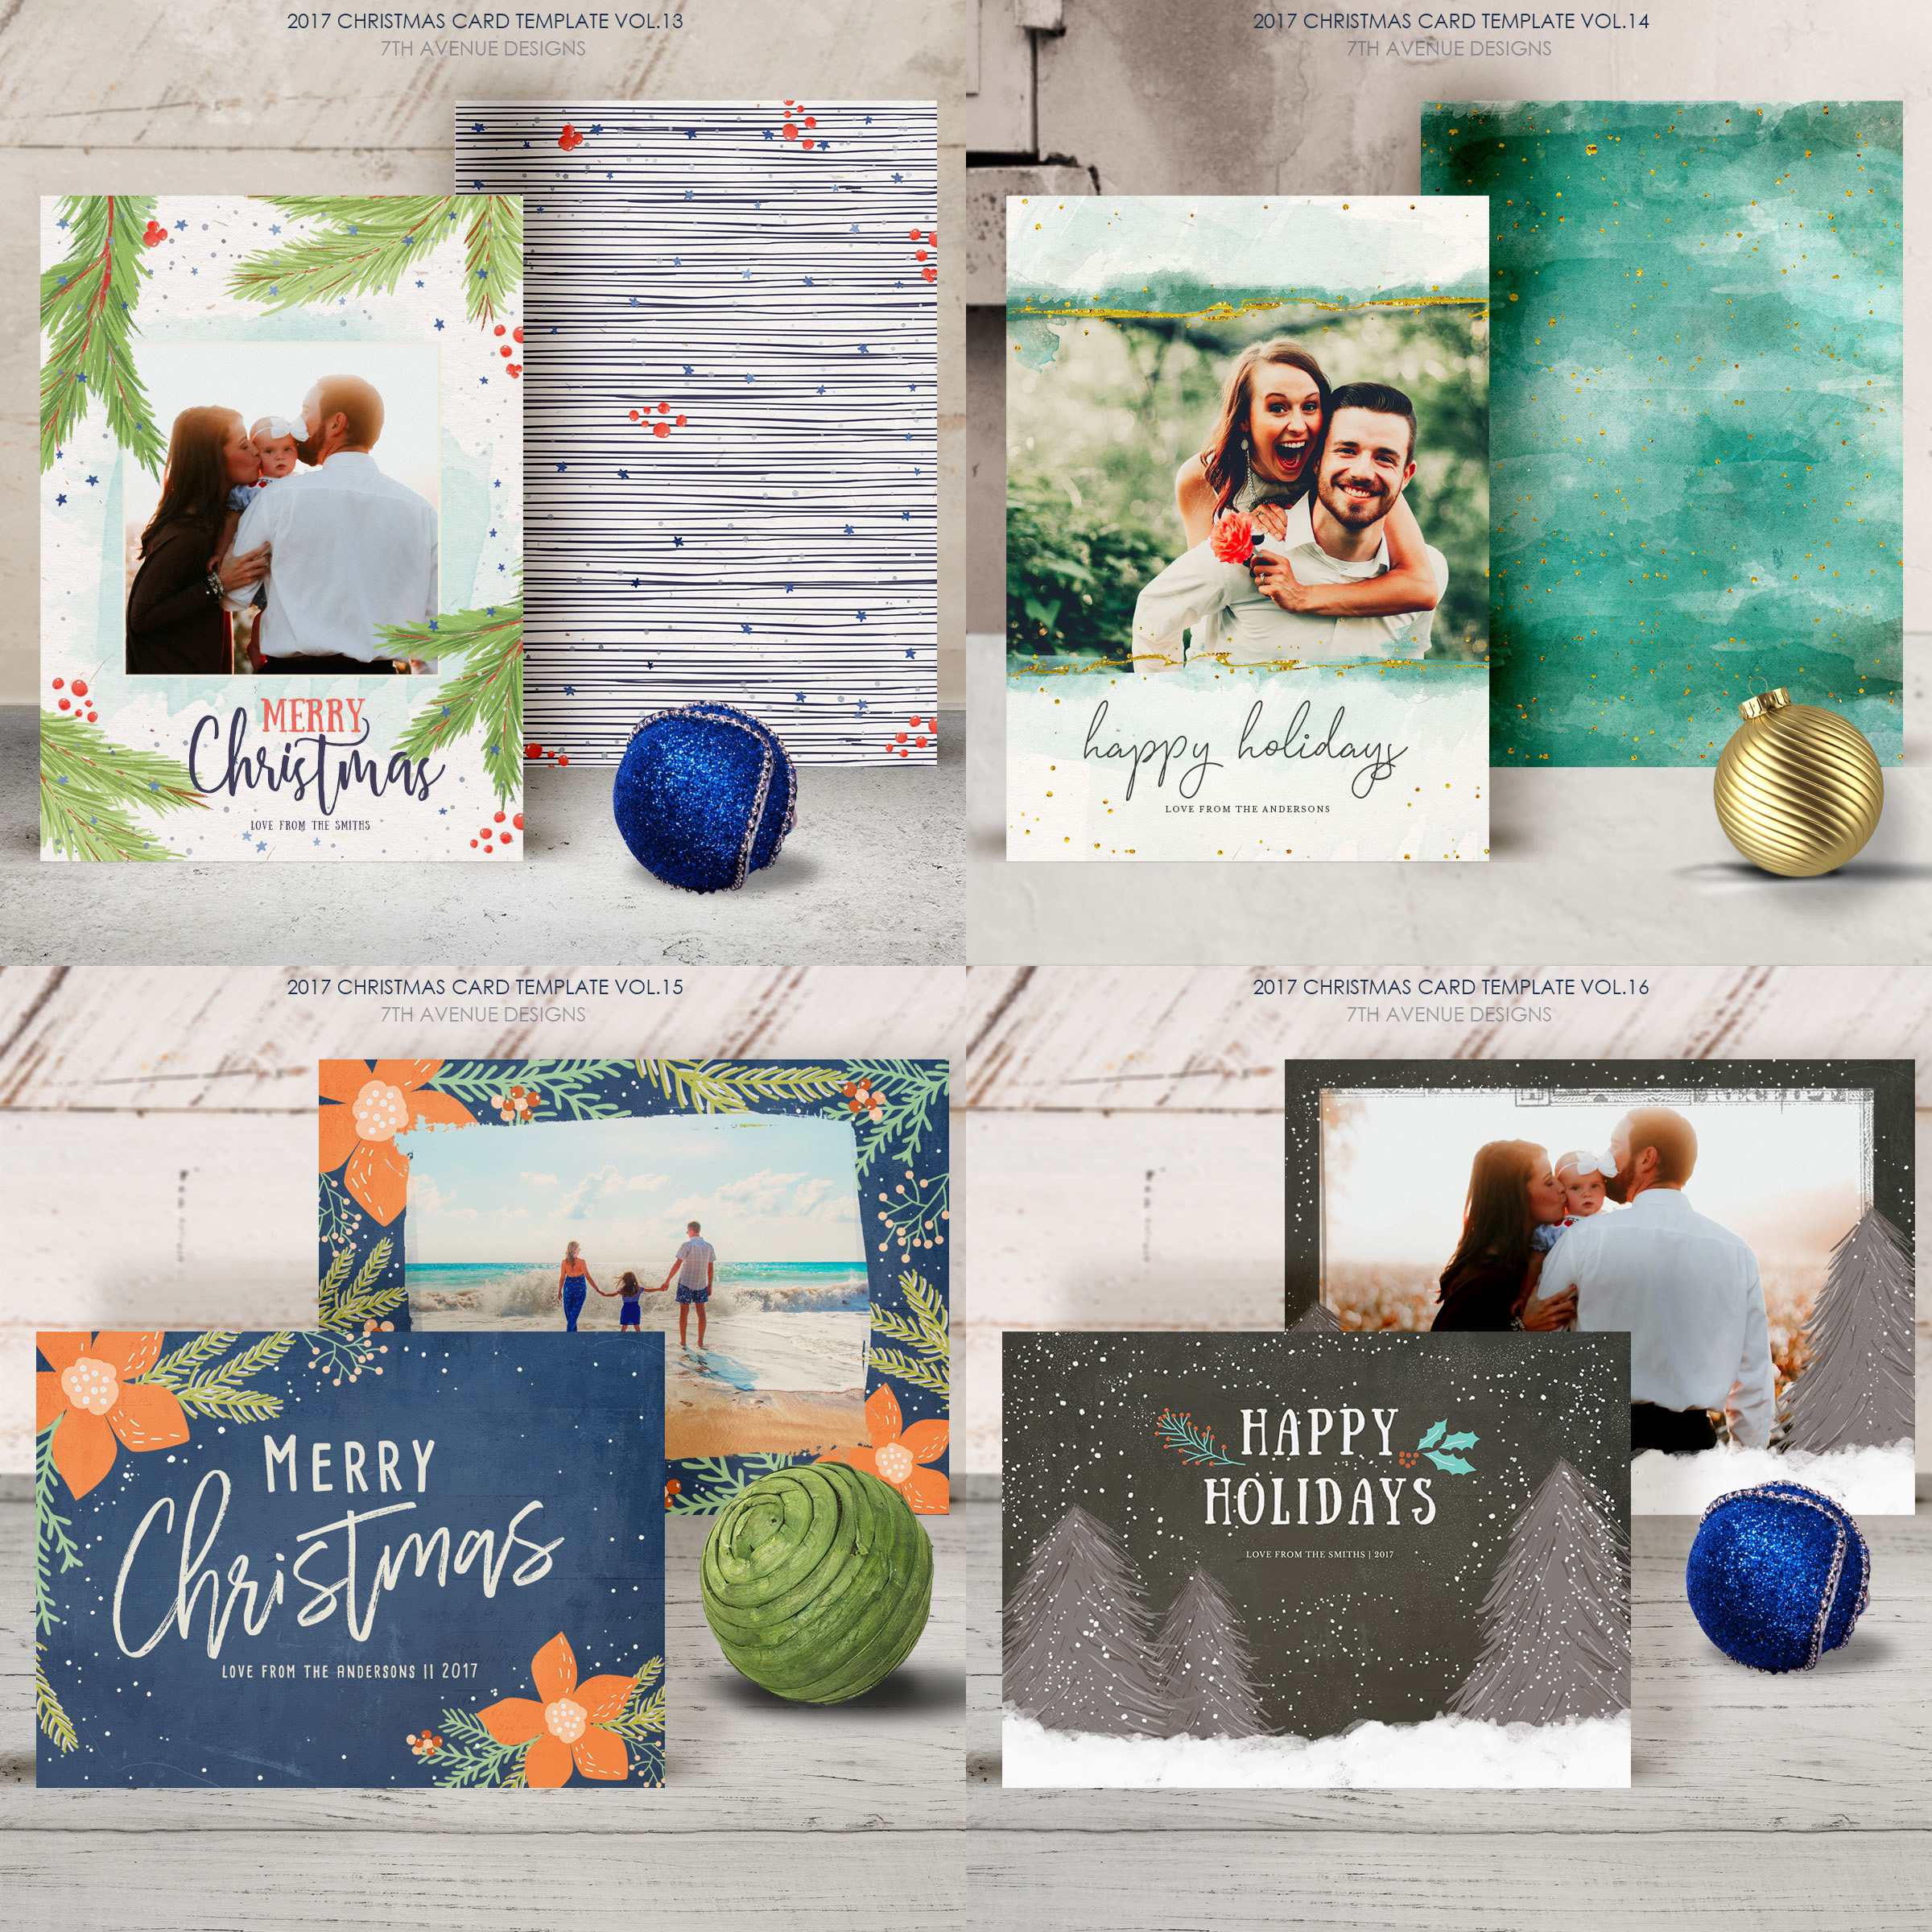 Christmas Cards Template v2 example image 5